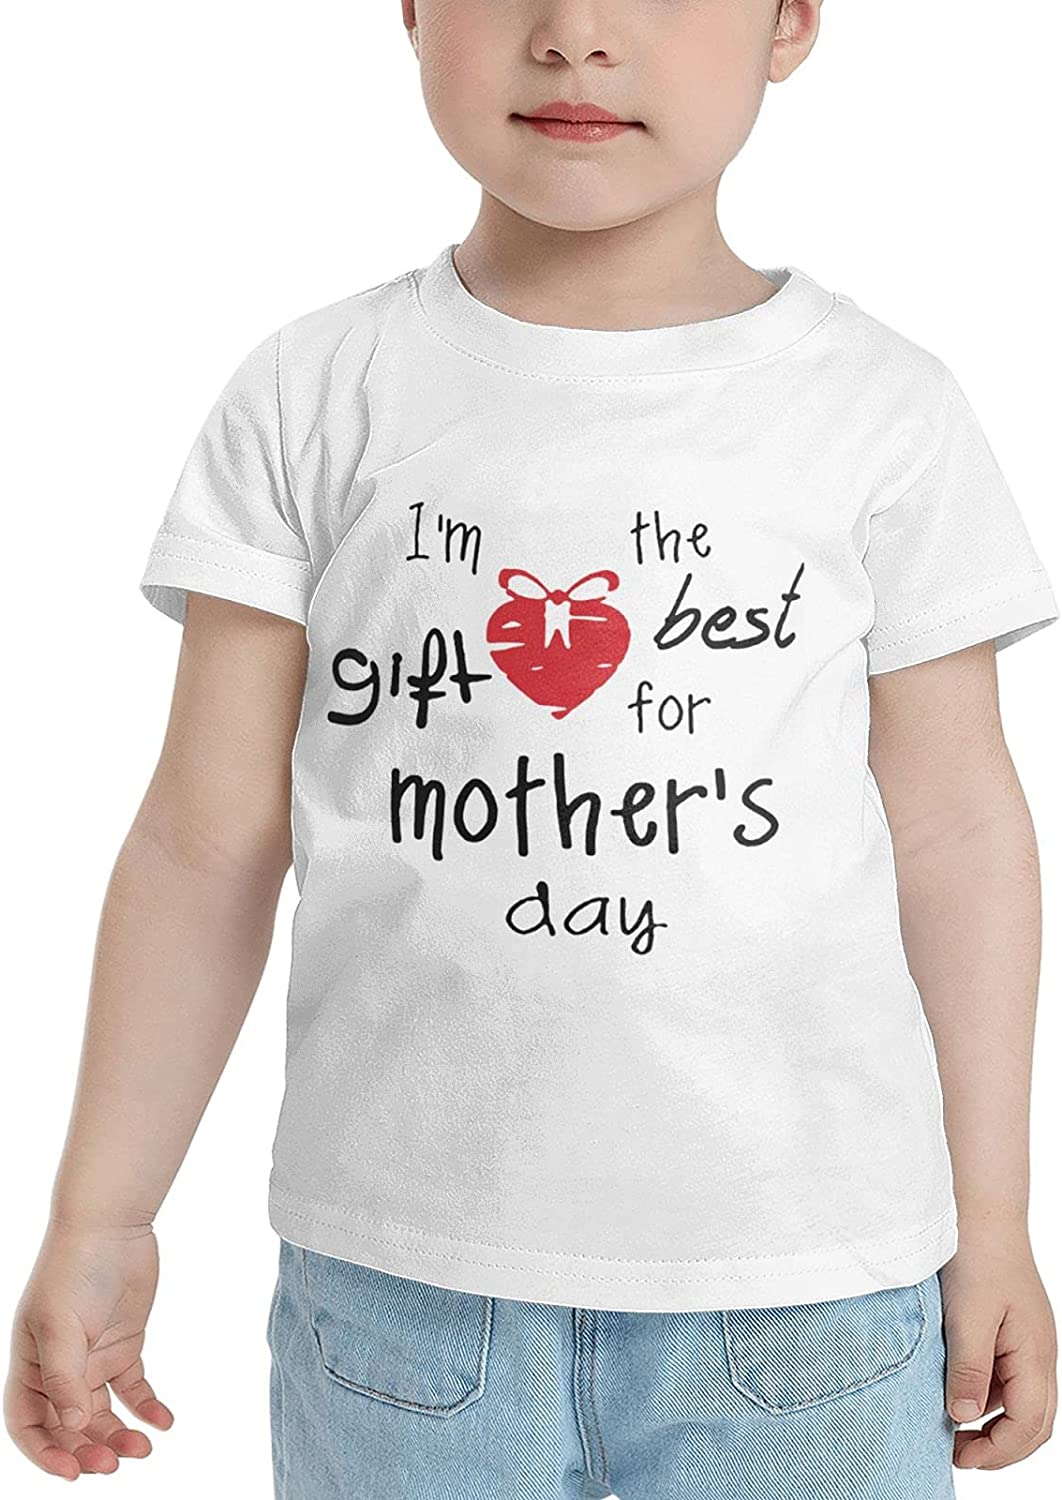 I M The Gift Best for Mothers Day T-Shirts Novelty for Kids Tees with Cool Designs